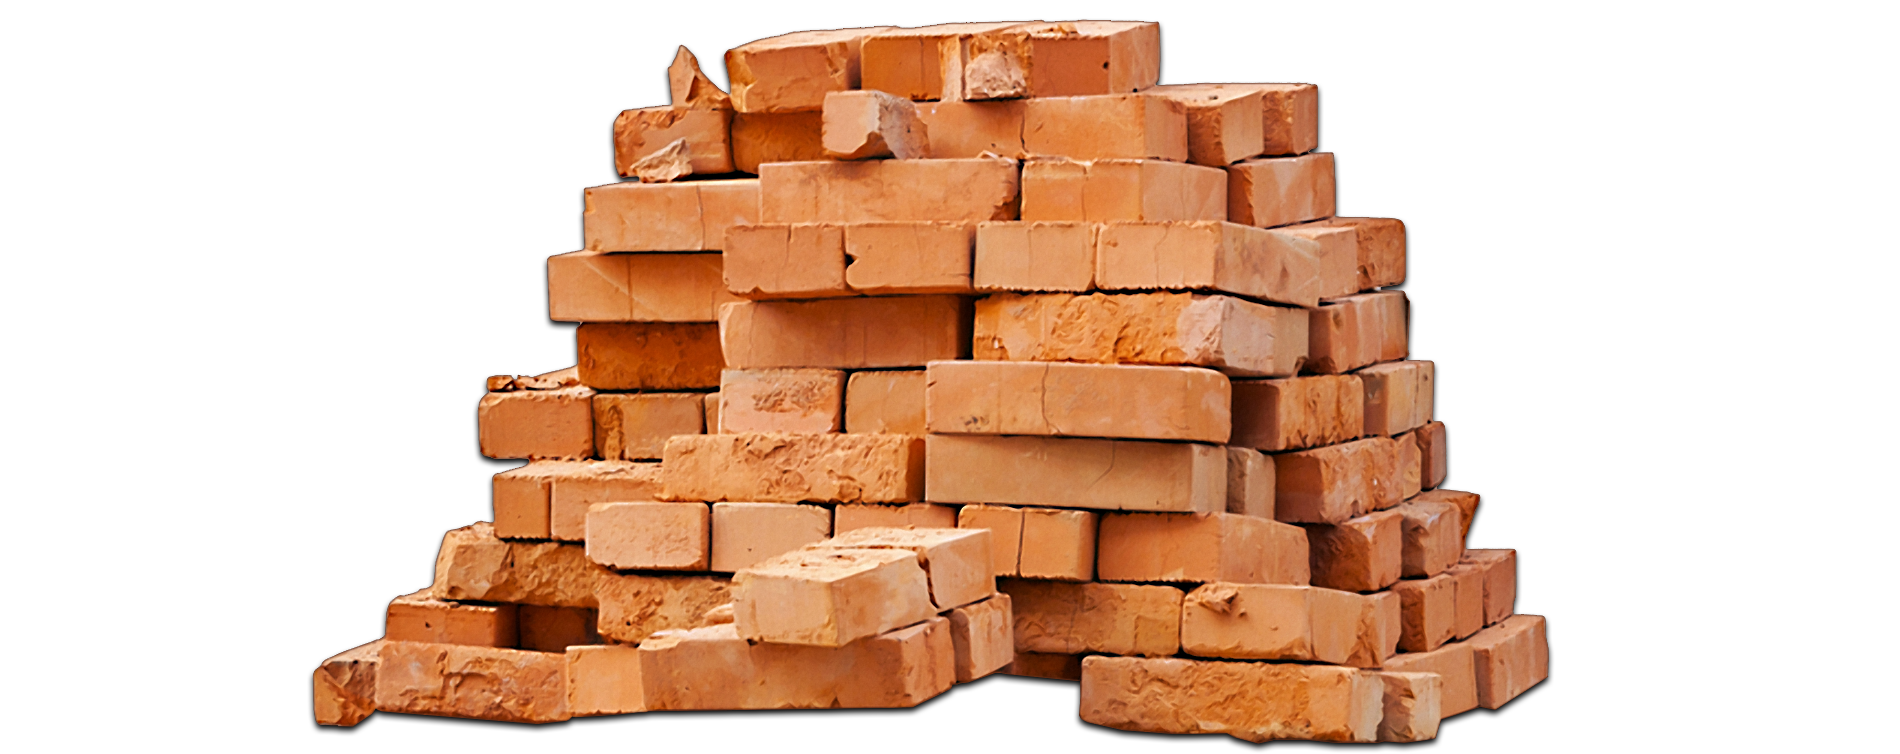 Browse And Download Brick Png Pictures image #39819